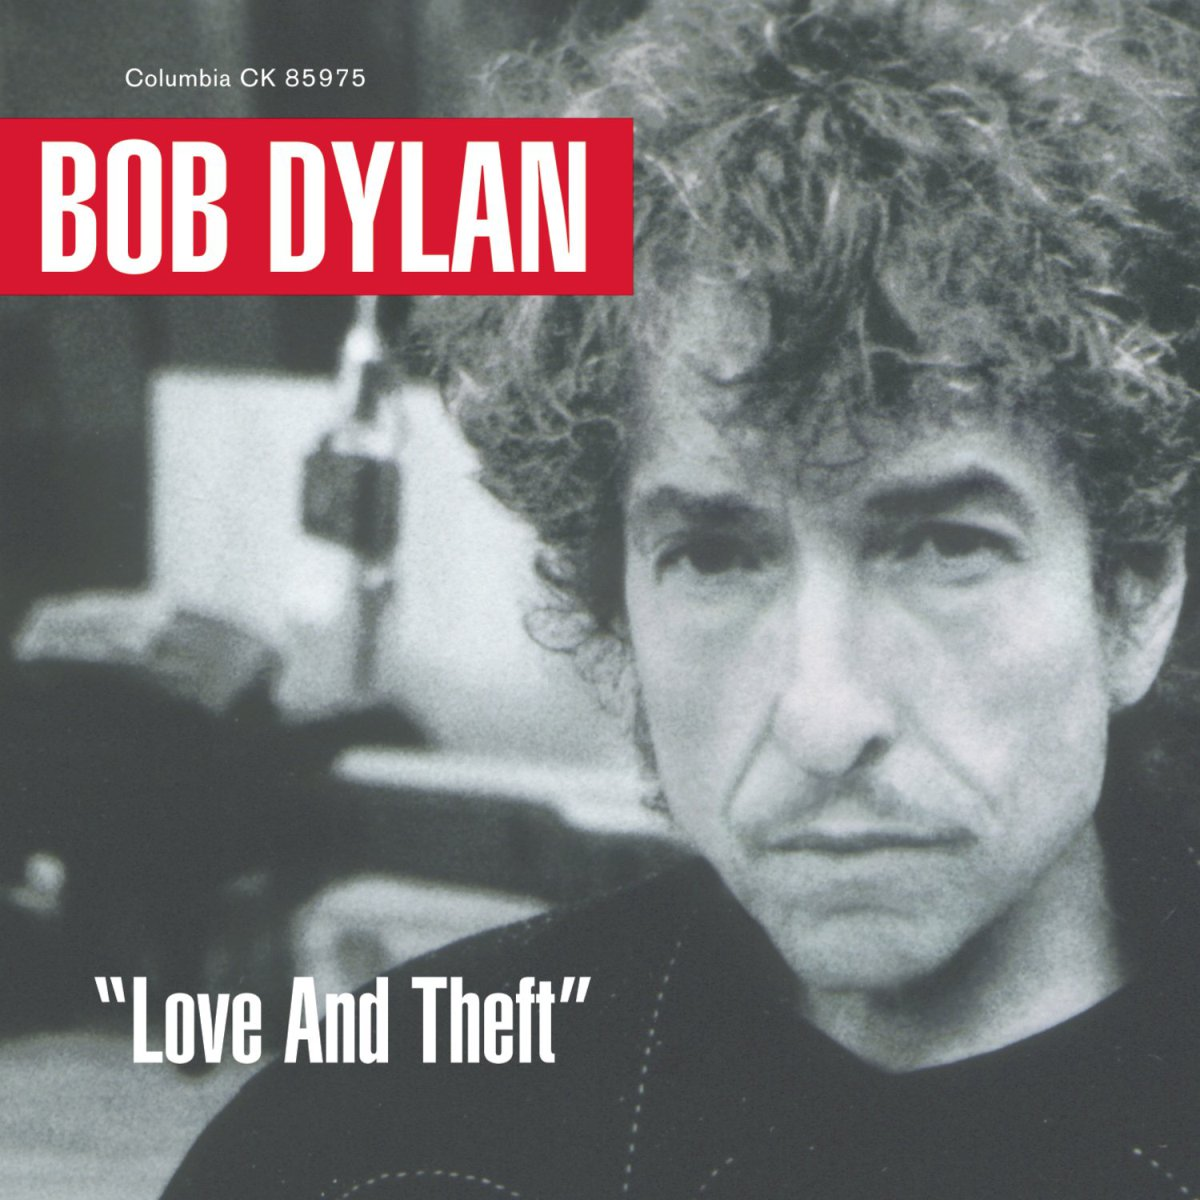 'Love and theft' – Bob Dylan